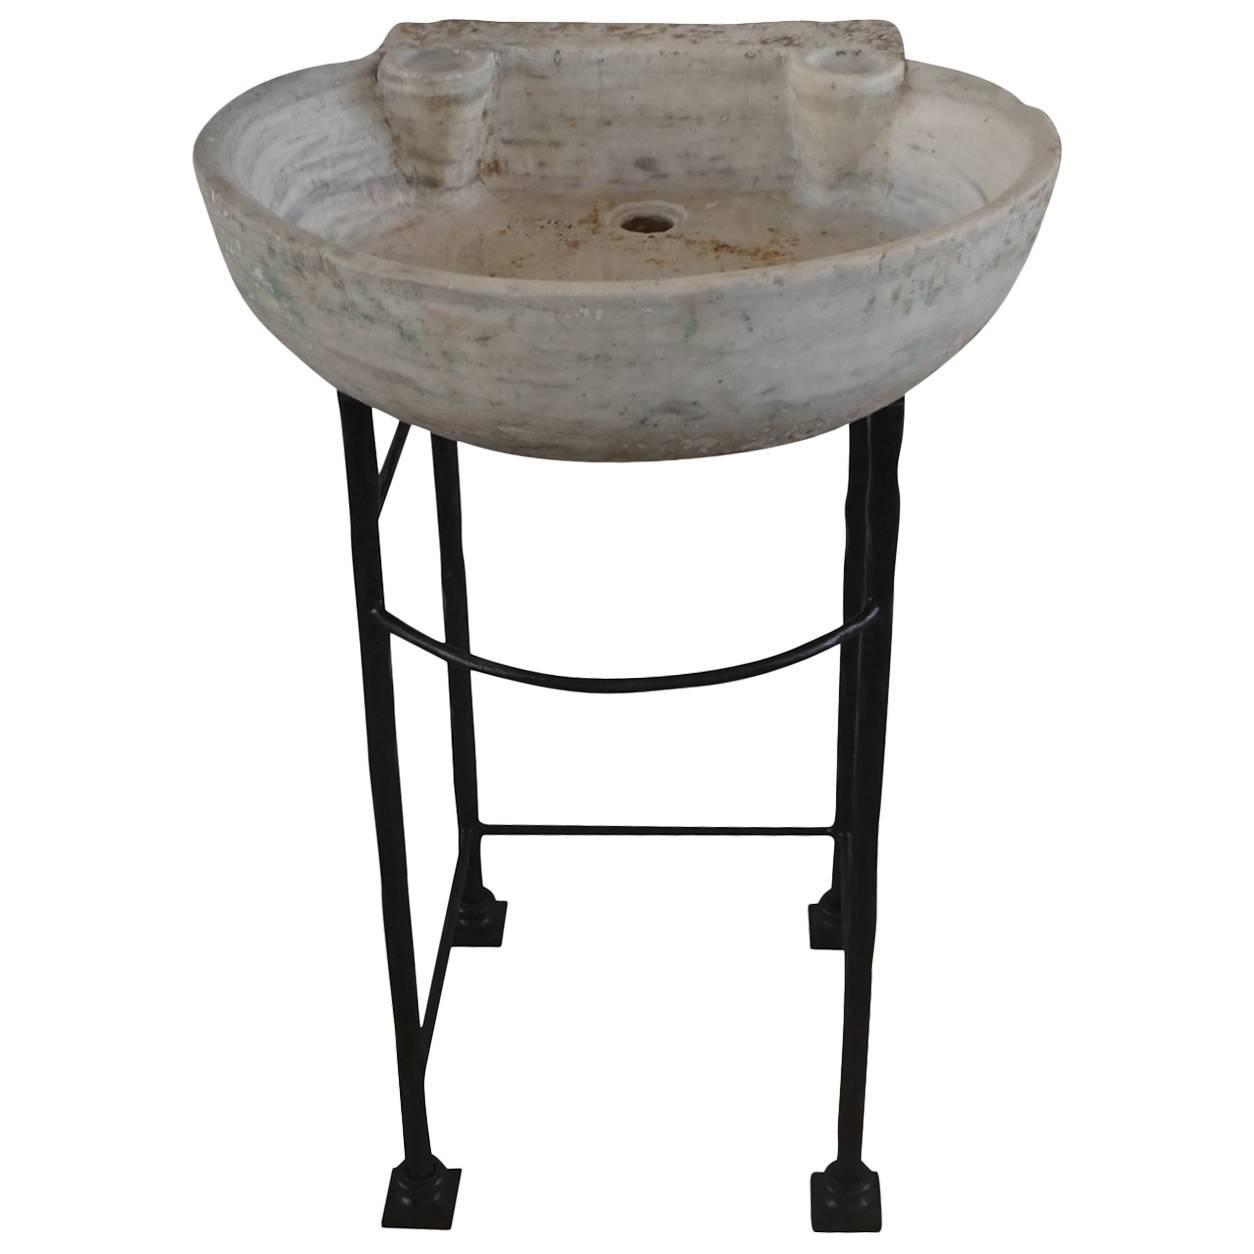 Carrara Marble Sink : 19th Century Carrara Oval Marble Sink Basin Vanitiy, Italy For Sale at ...